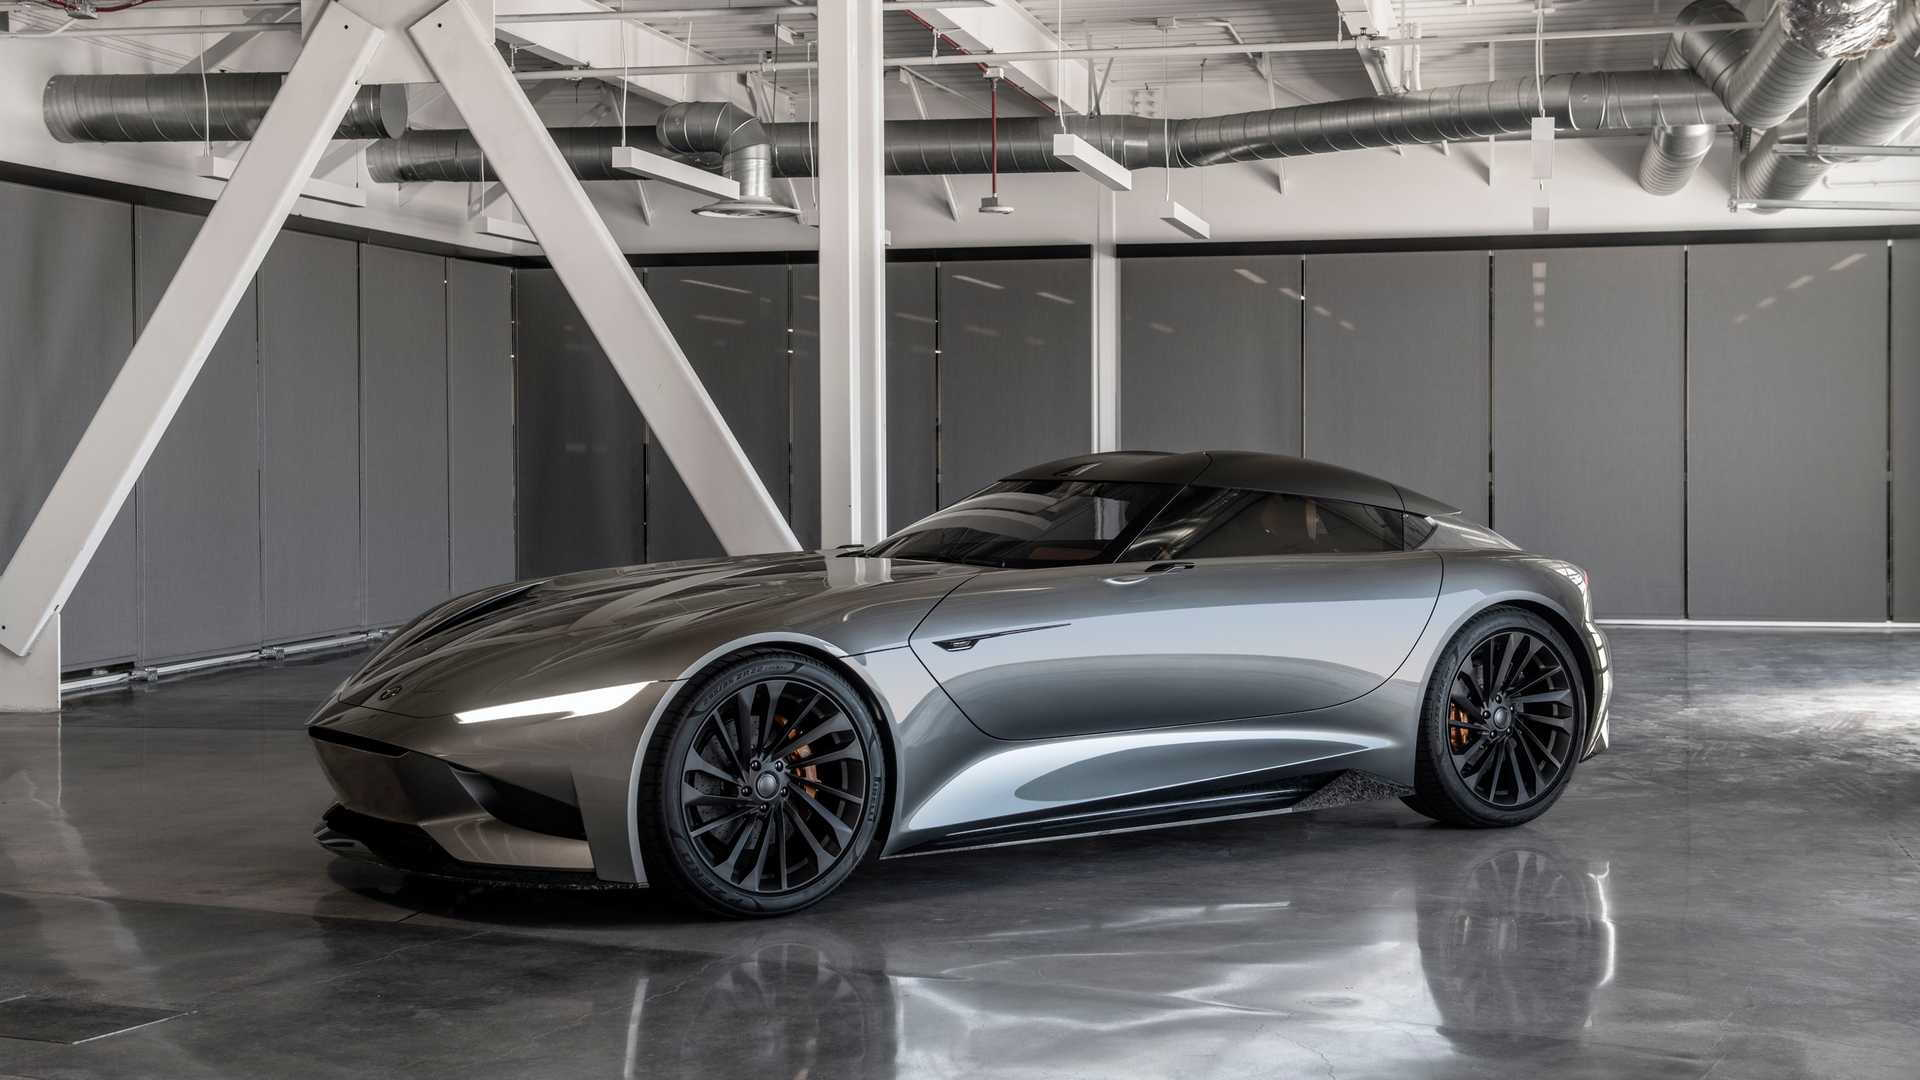 Karma SC2 electric coupe concept has 1,100 horsepower, 350-mile range